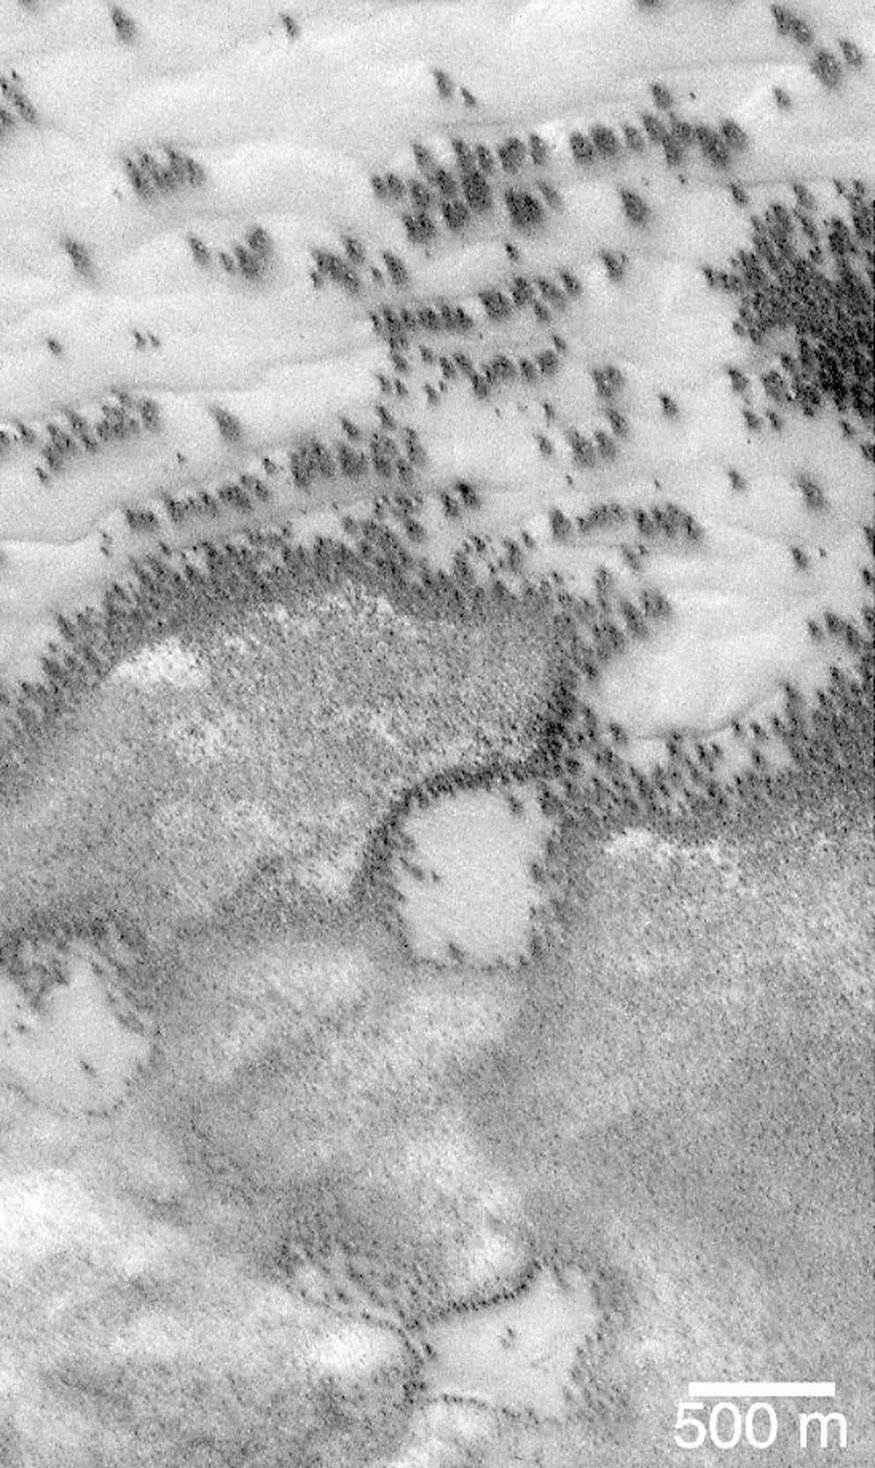 This image captured by NASA's Mars Global Surveyor (MGS) on July 21, 1999, shows polar regions on Mars during the spring and summer seasons, do indeed resemble aerial photographs of sand dune fields on Earth.